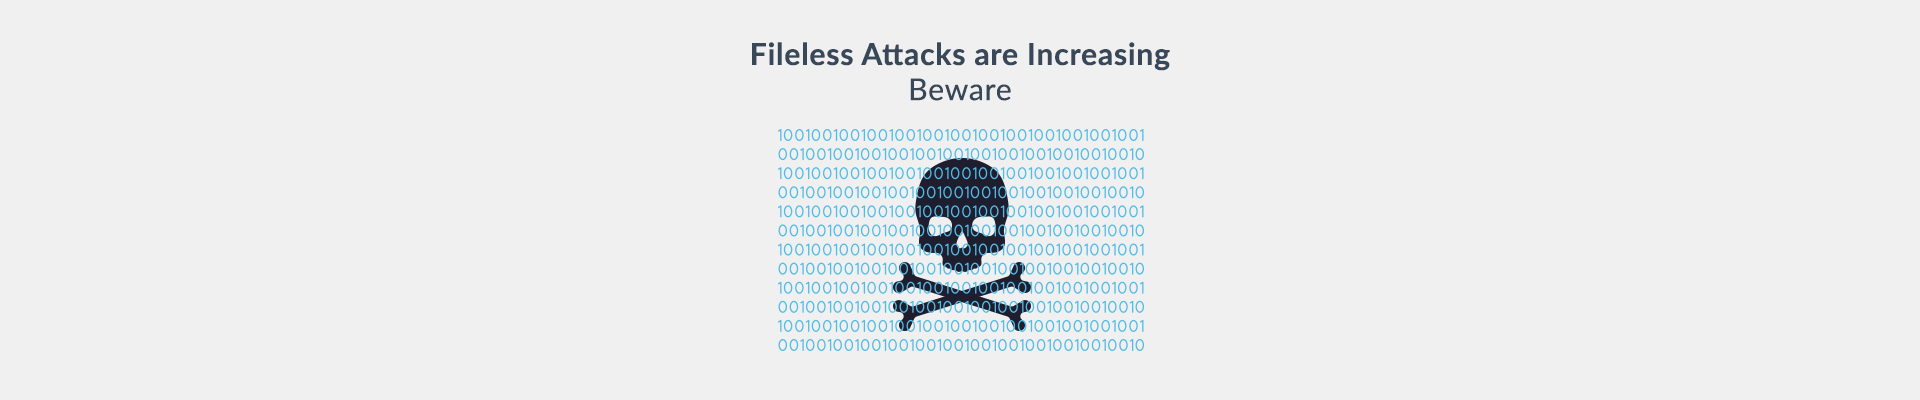 Fileless attacks are on the rise!